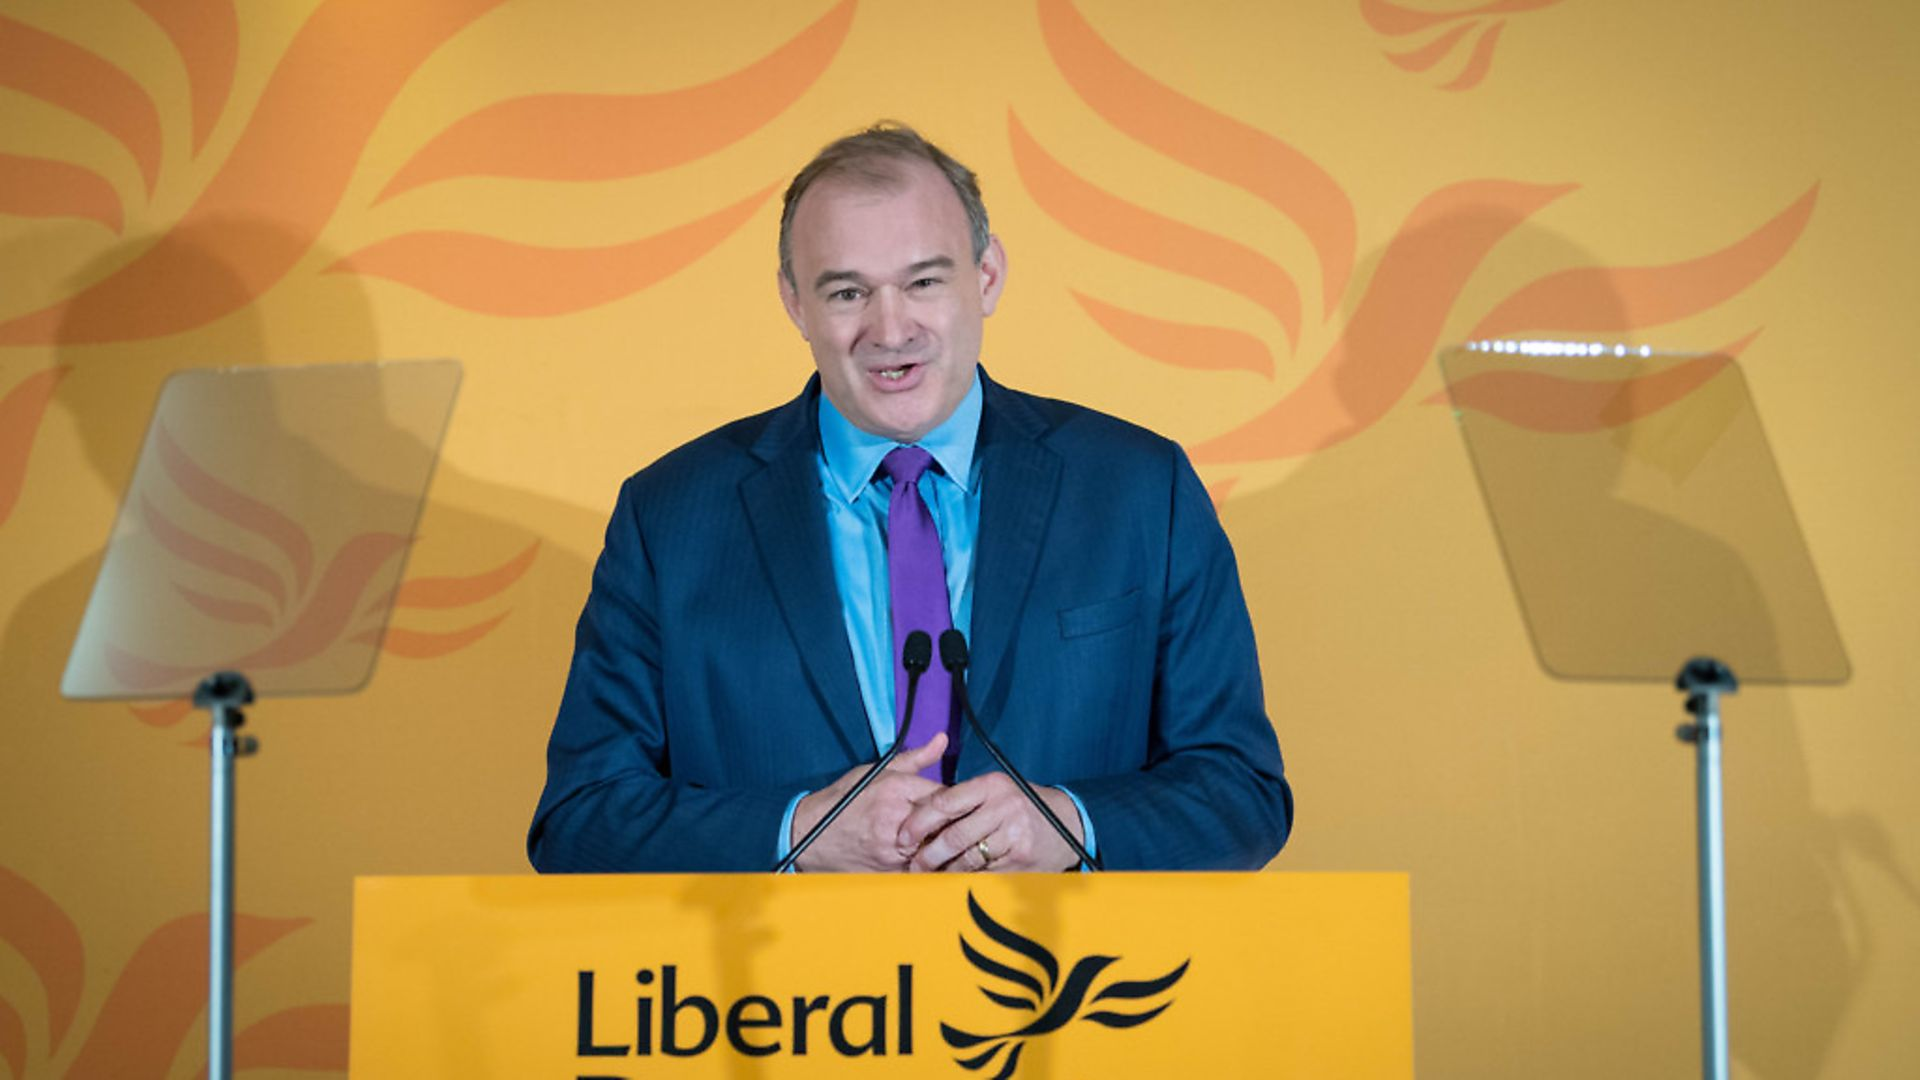 Sir Ed Davey speaks after he was elected as the leader of the Liberal Democrats. Photograph: Stefan Rousseau/PA. - Credit: PA